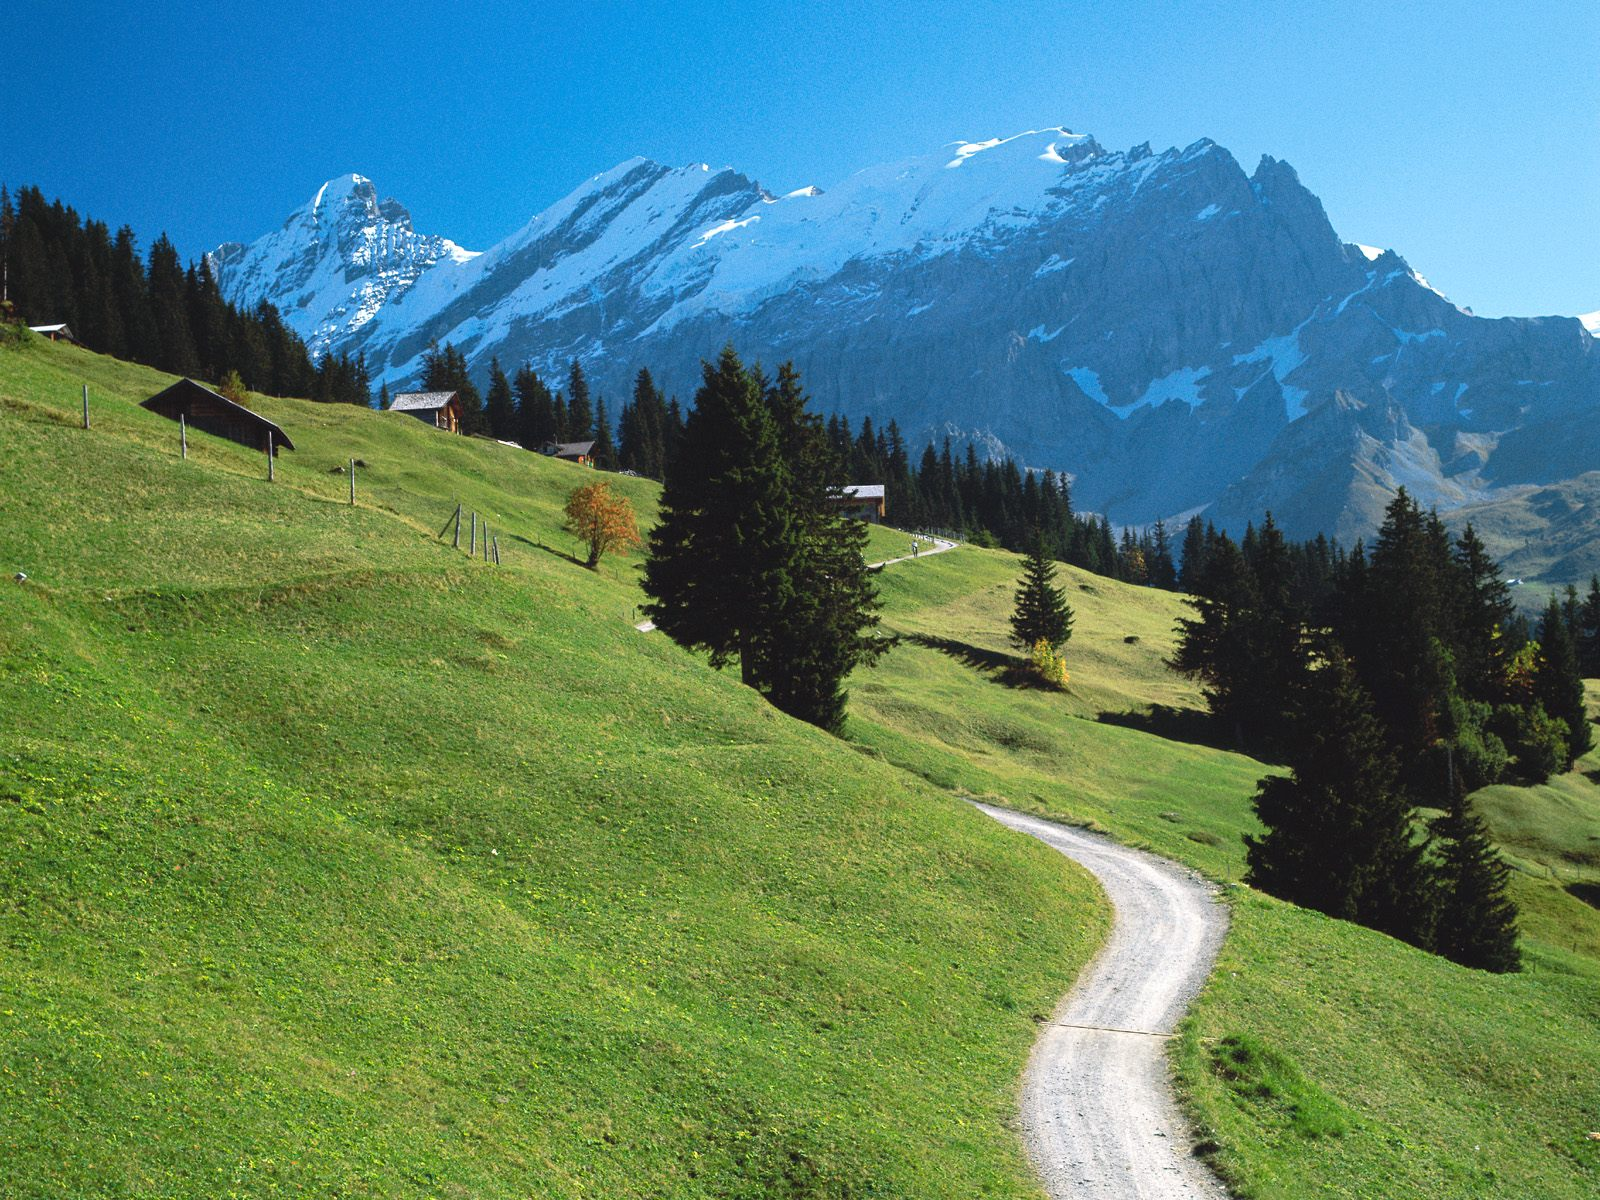 honeymoon-destination-switzerland-photos- (14)